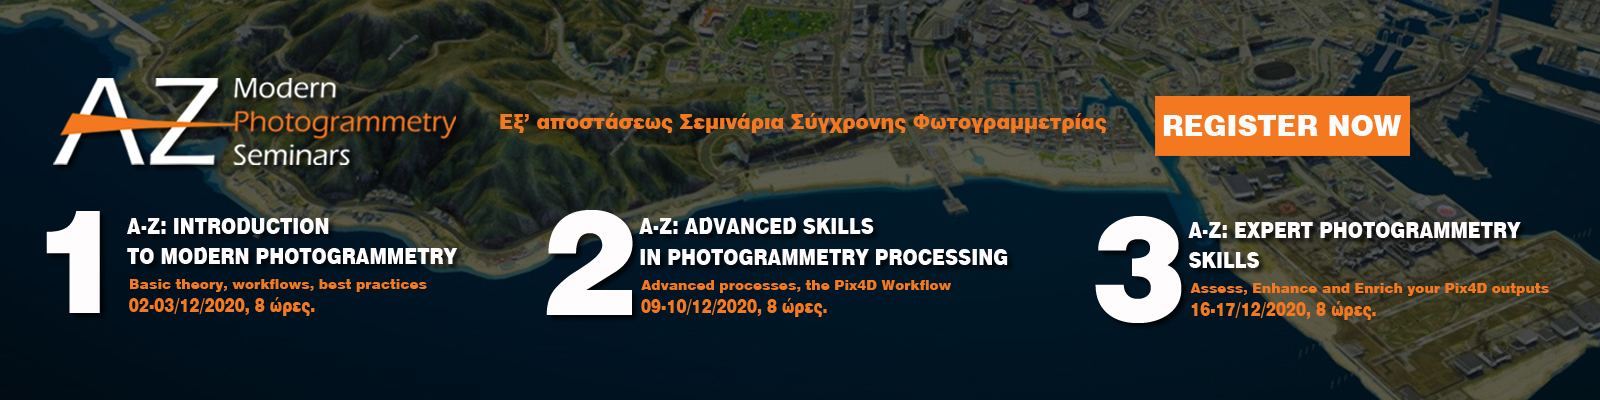 Photogrammetry Seminars